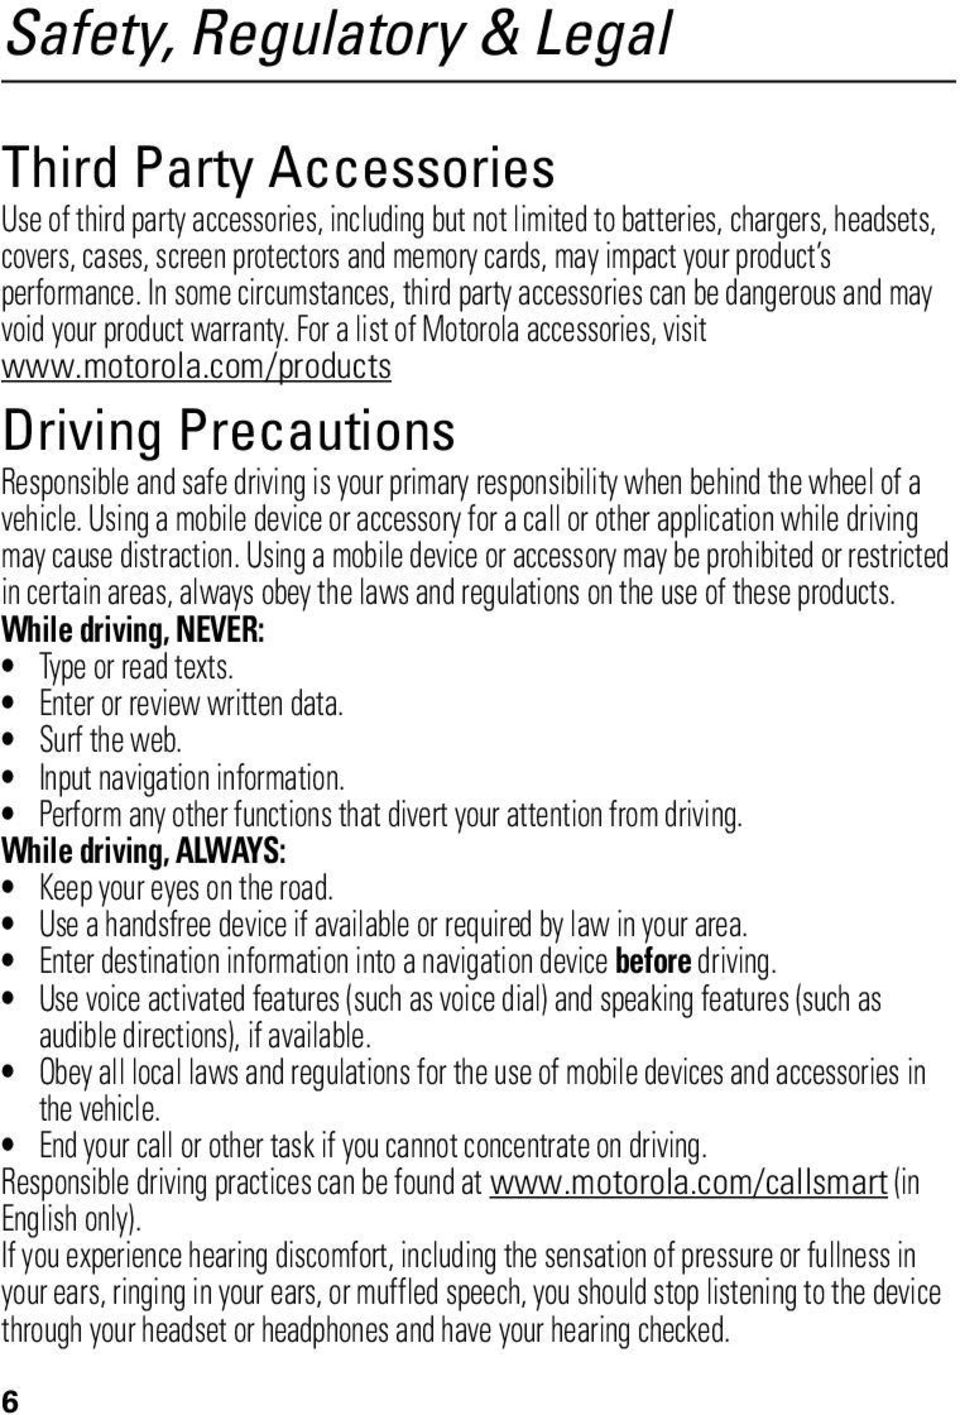 com/products Driving Precautions Responsible and safe driving is your primary responsibility when behind the wheel of a vehicle.